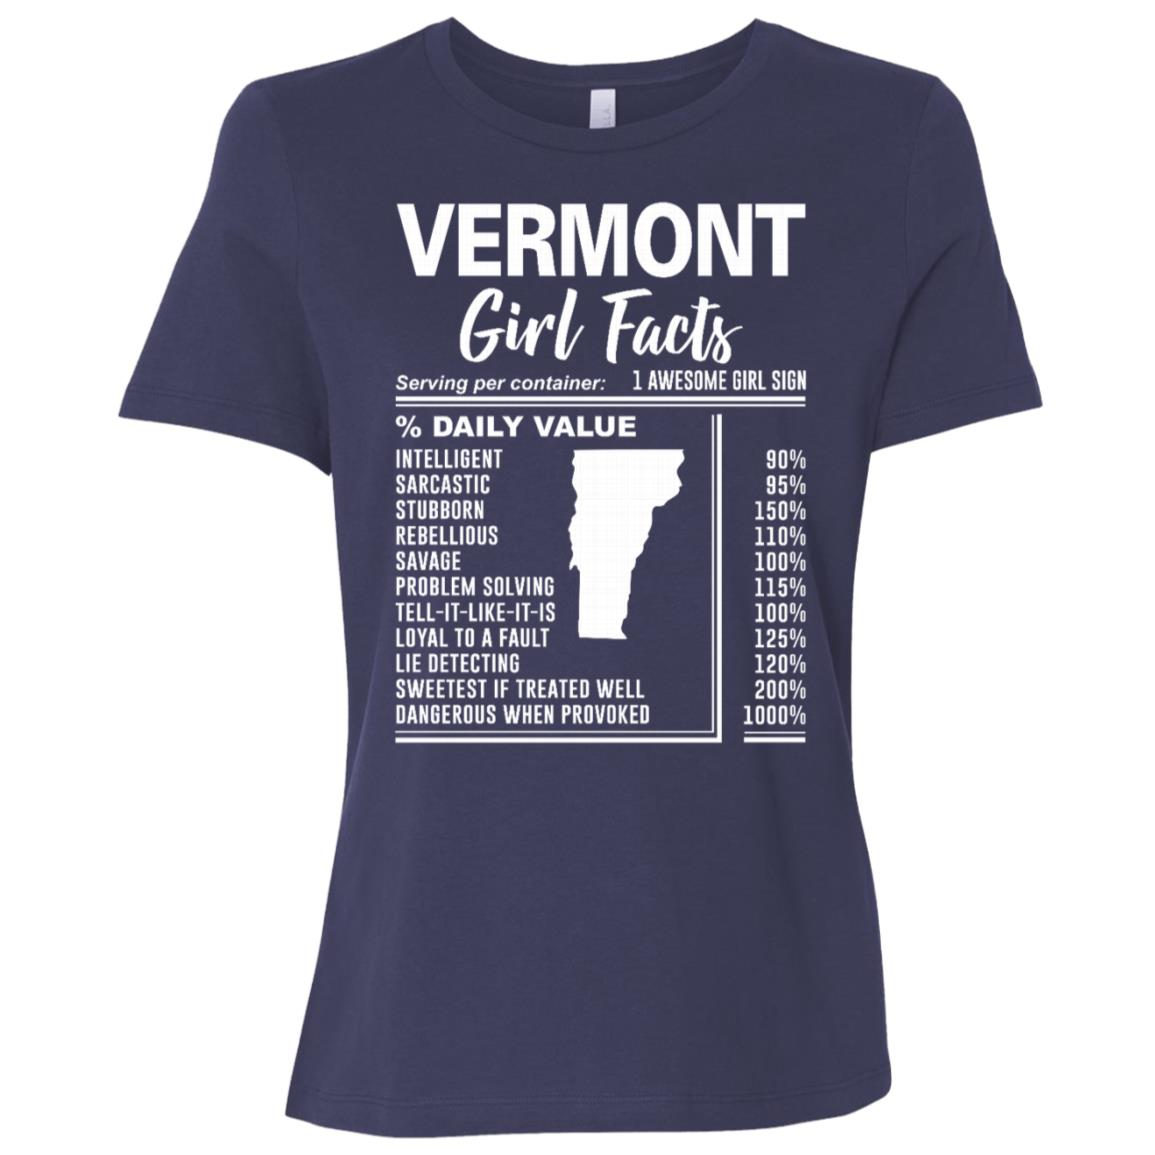 Born in Vermont – Vermont Girl Facts Women Short Sleeve T-Shirt